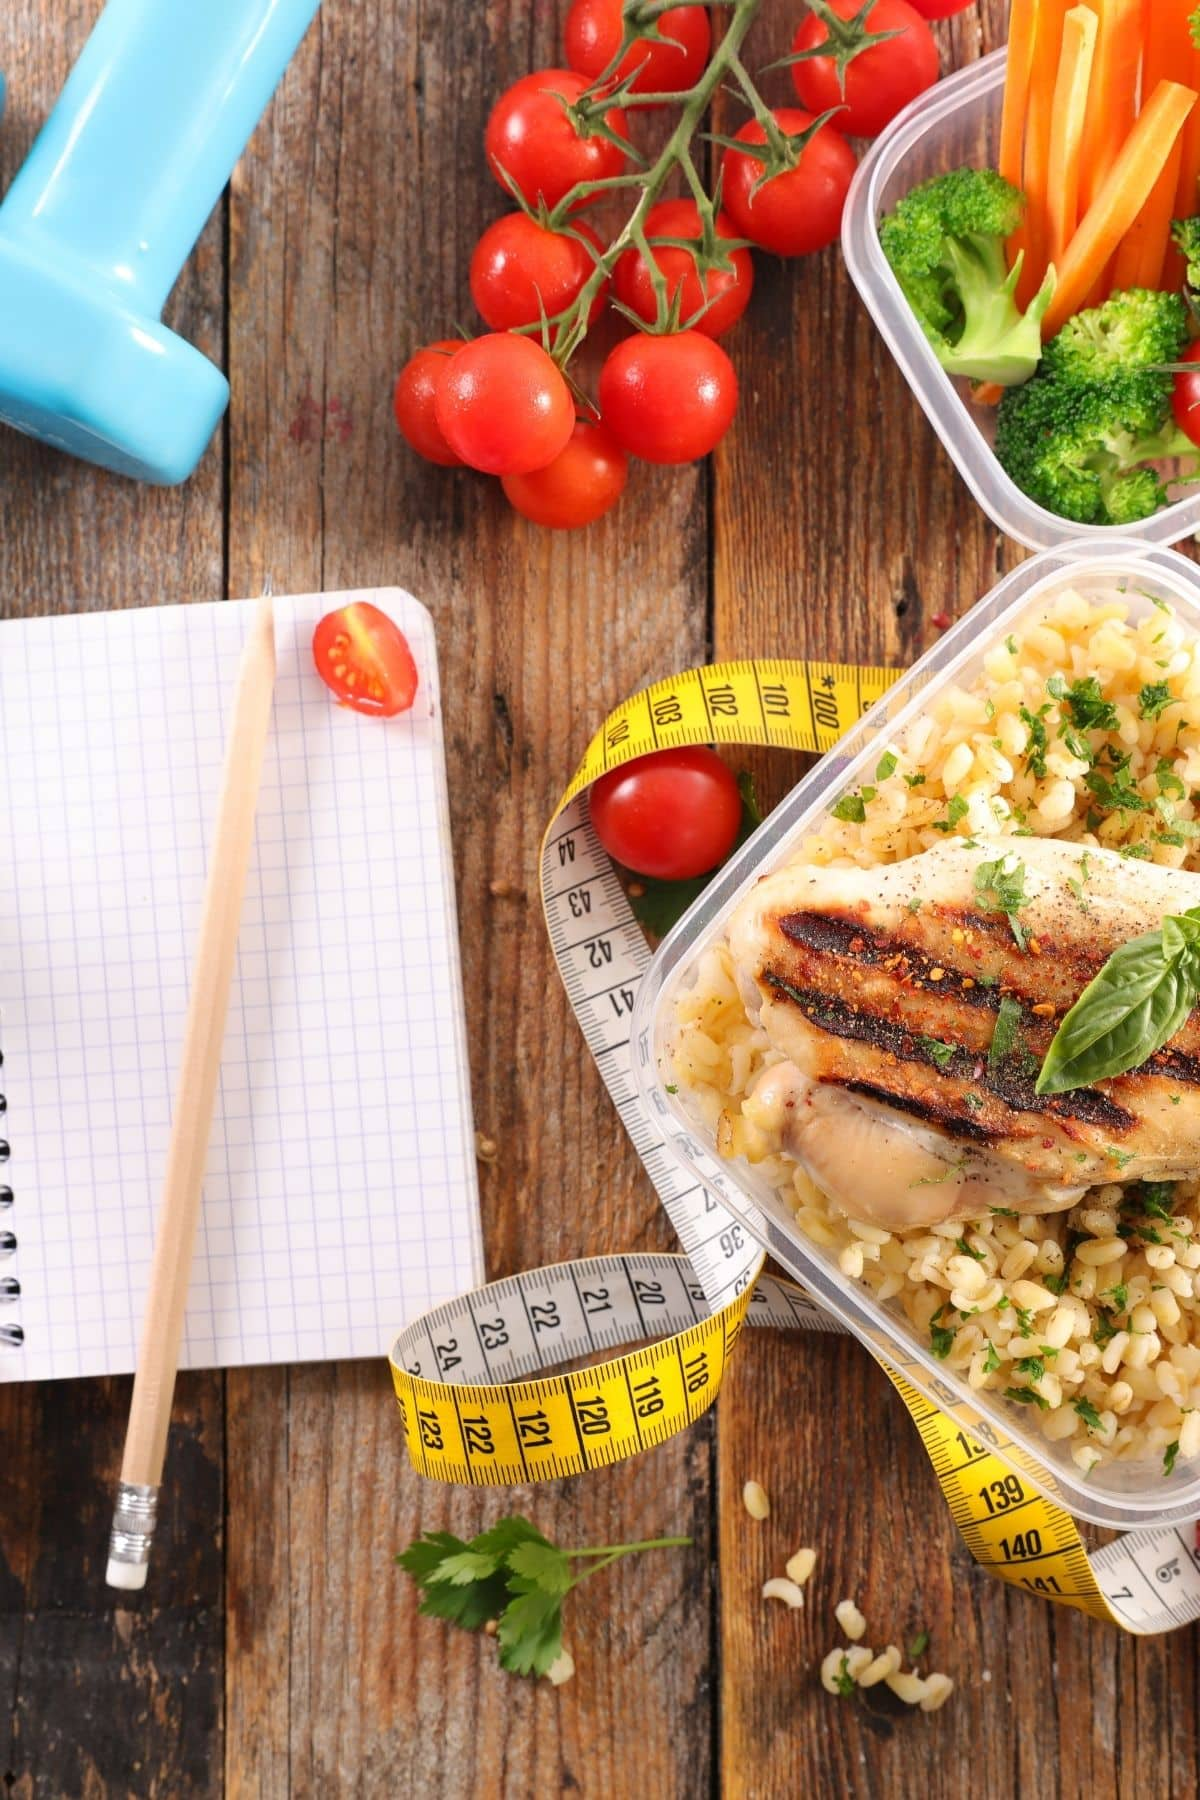 diet journal and healthy food on a table